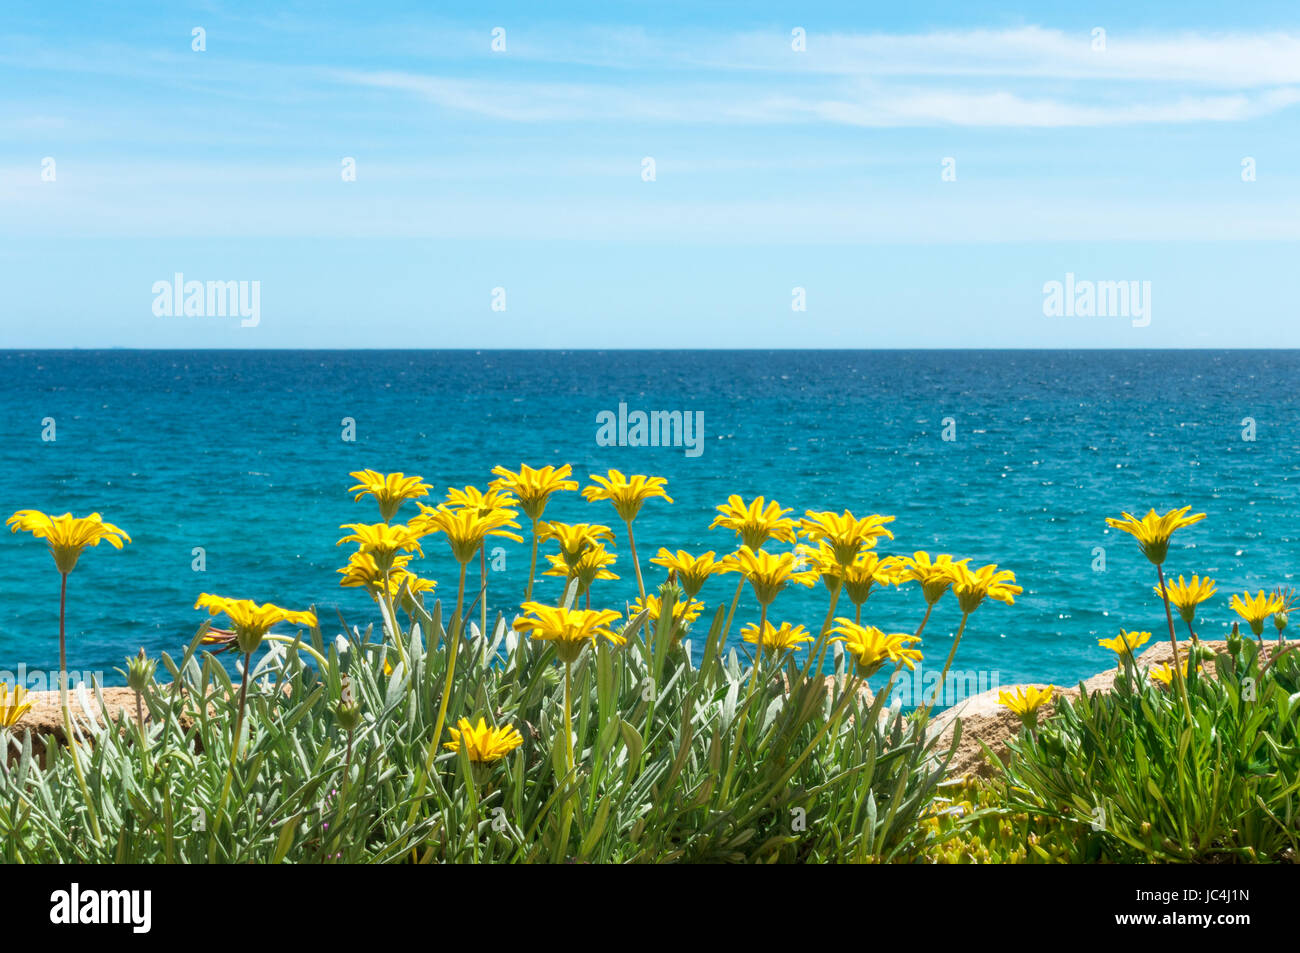 Yellow flowers with blue sea water and sky in background